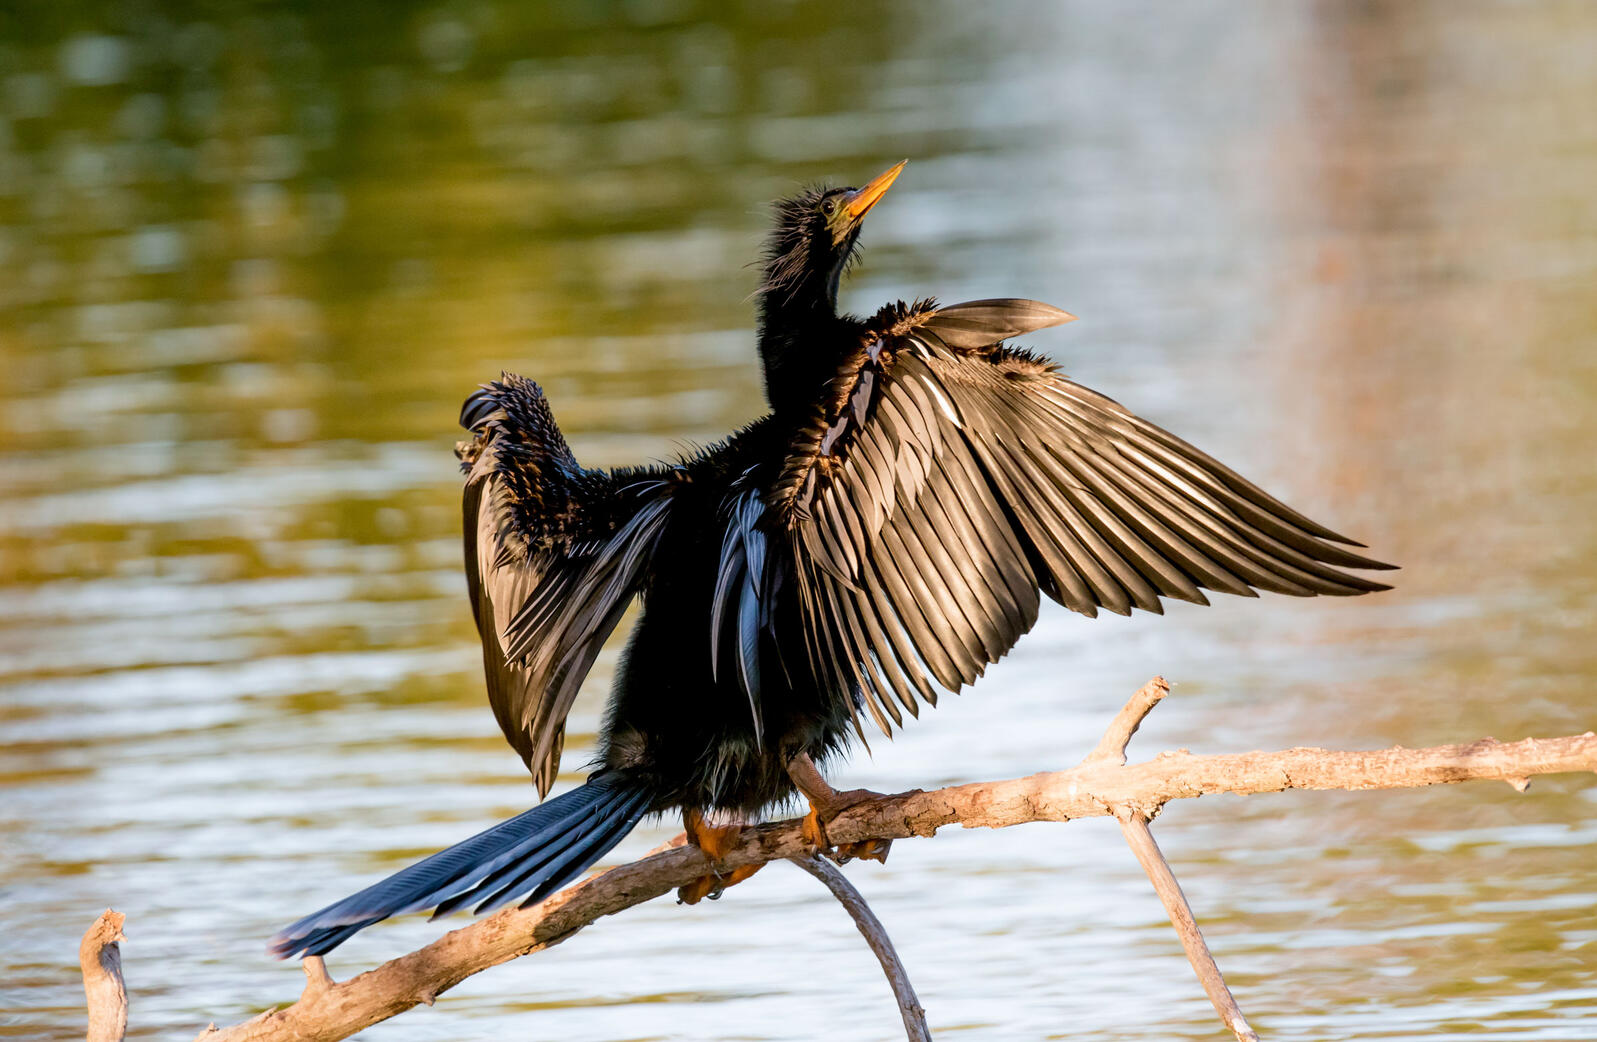 If the idea of an Anhinga living in the Grand Canyon sounds absurd, you might want to consider renowned ornithologist Kenn Kaufman's view. Rosemary Gillan/Audubon Photography Awards